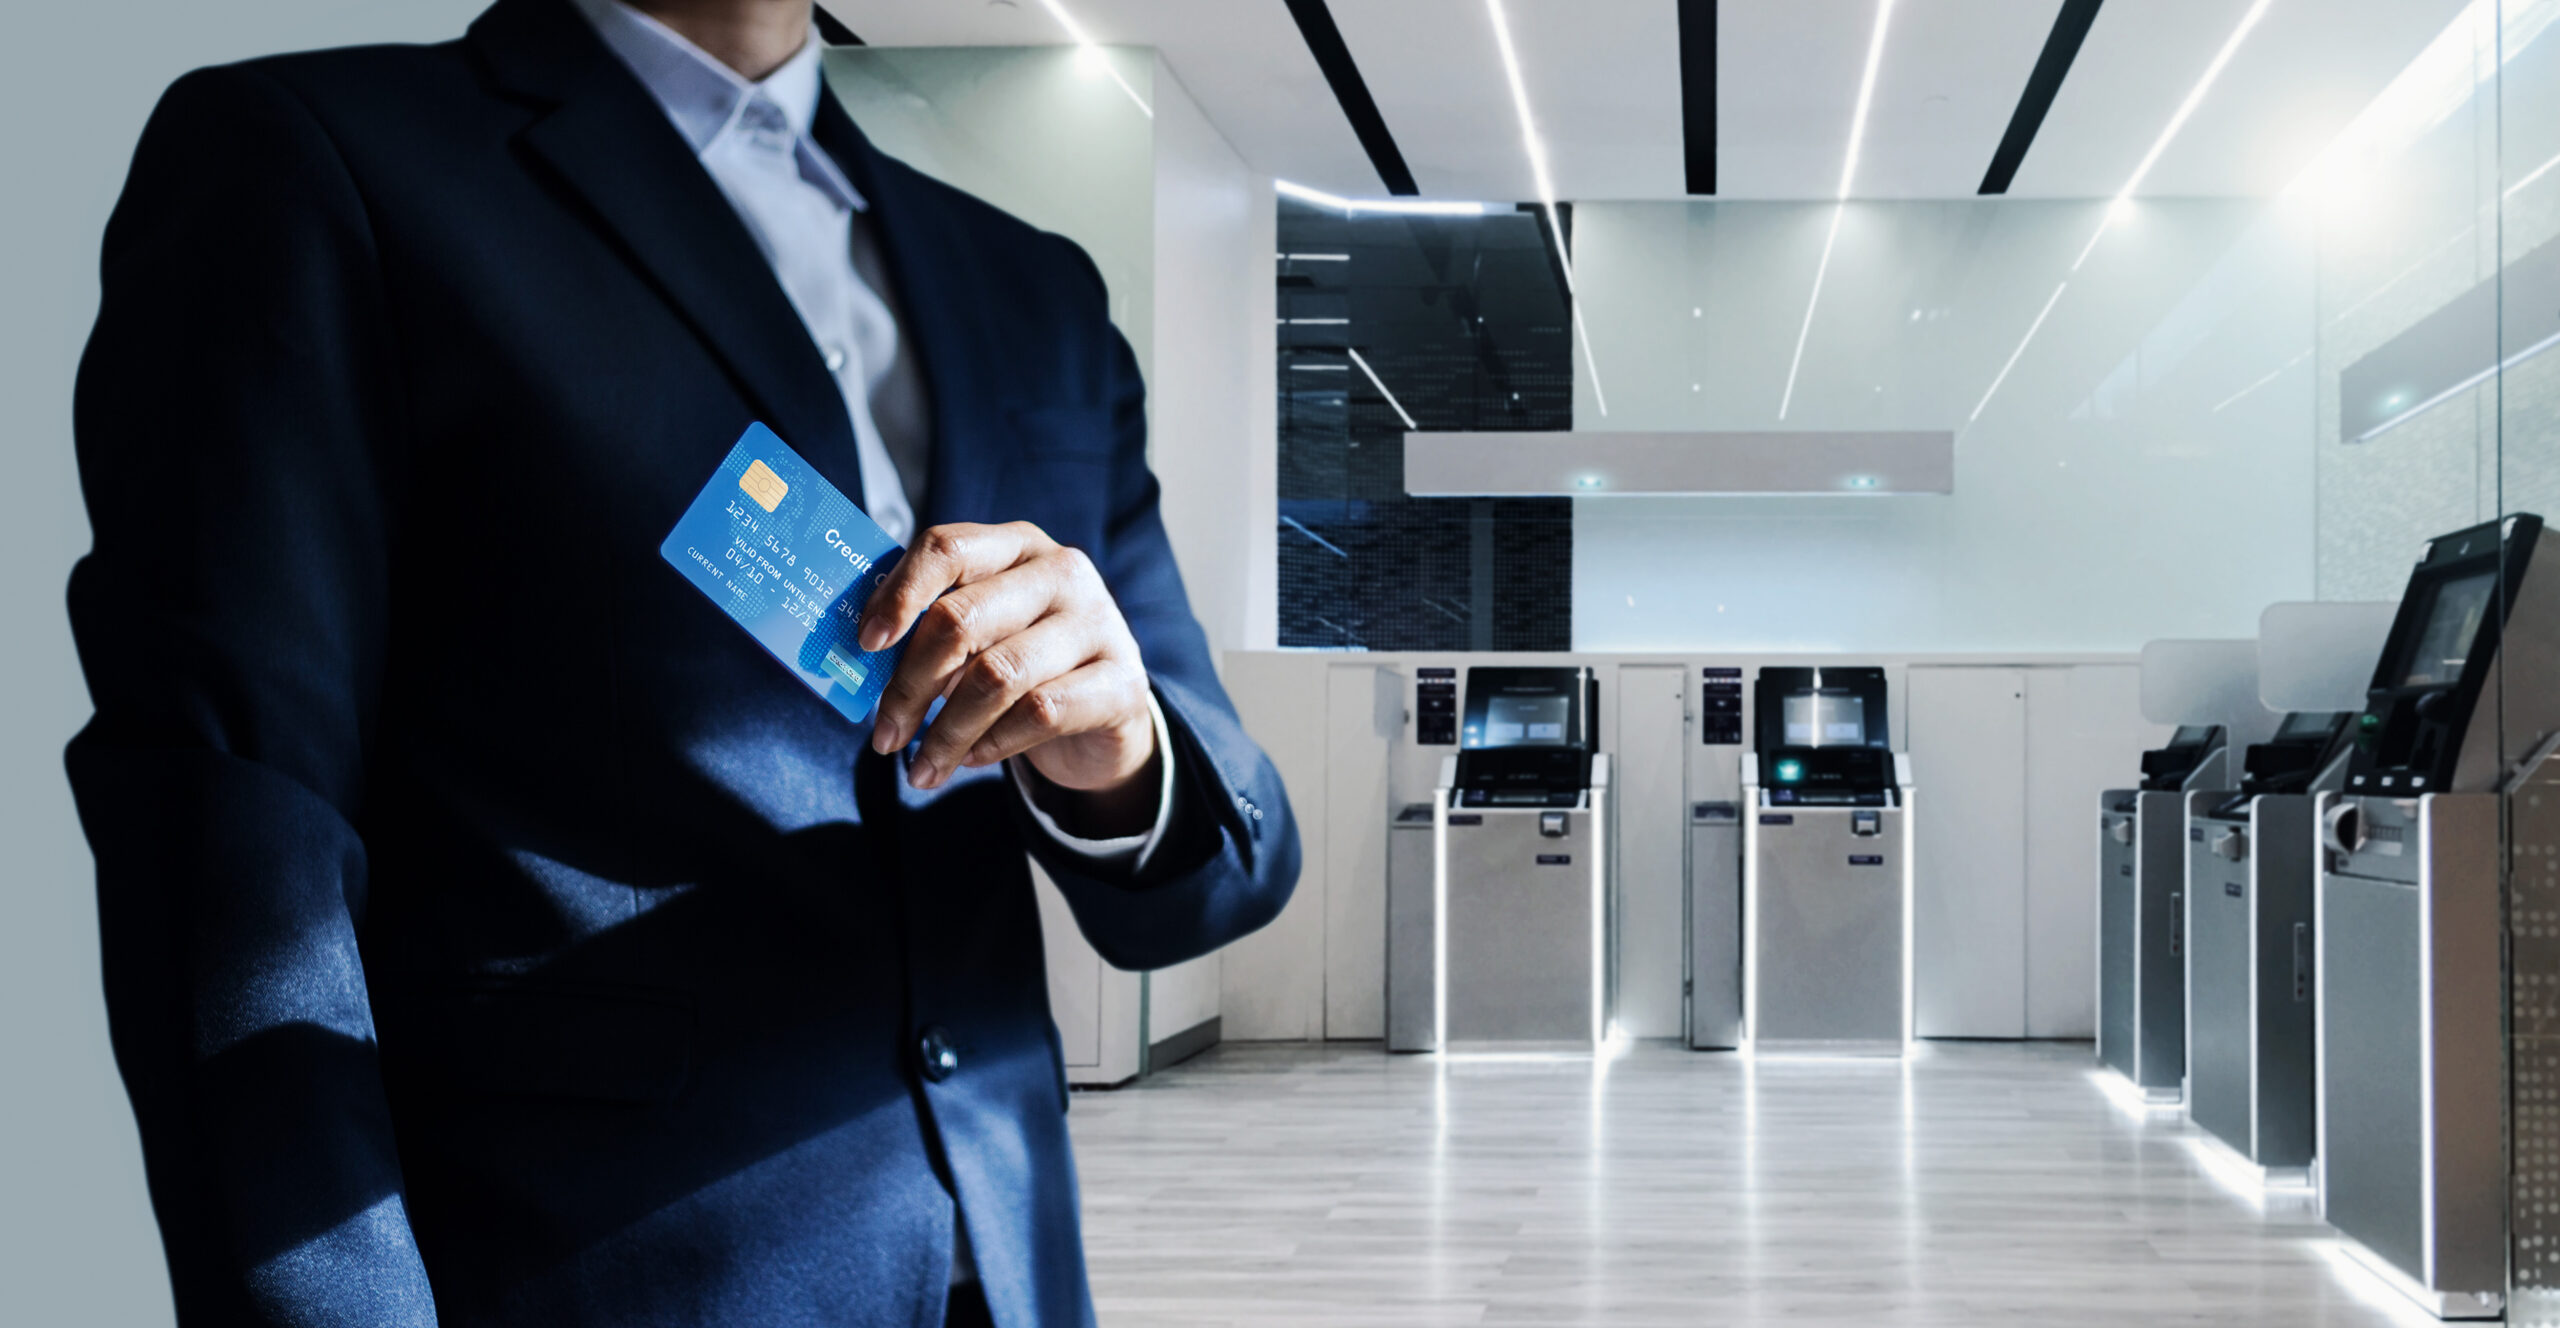 Bank manager and credit card in hand, business man standing confidently with pride in financial modern, futuristic, technology and banking network connection